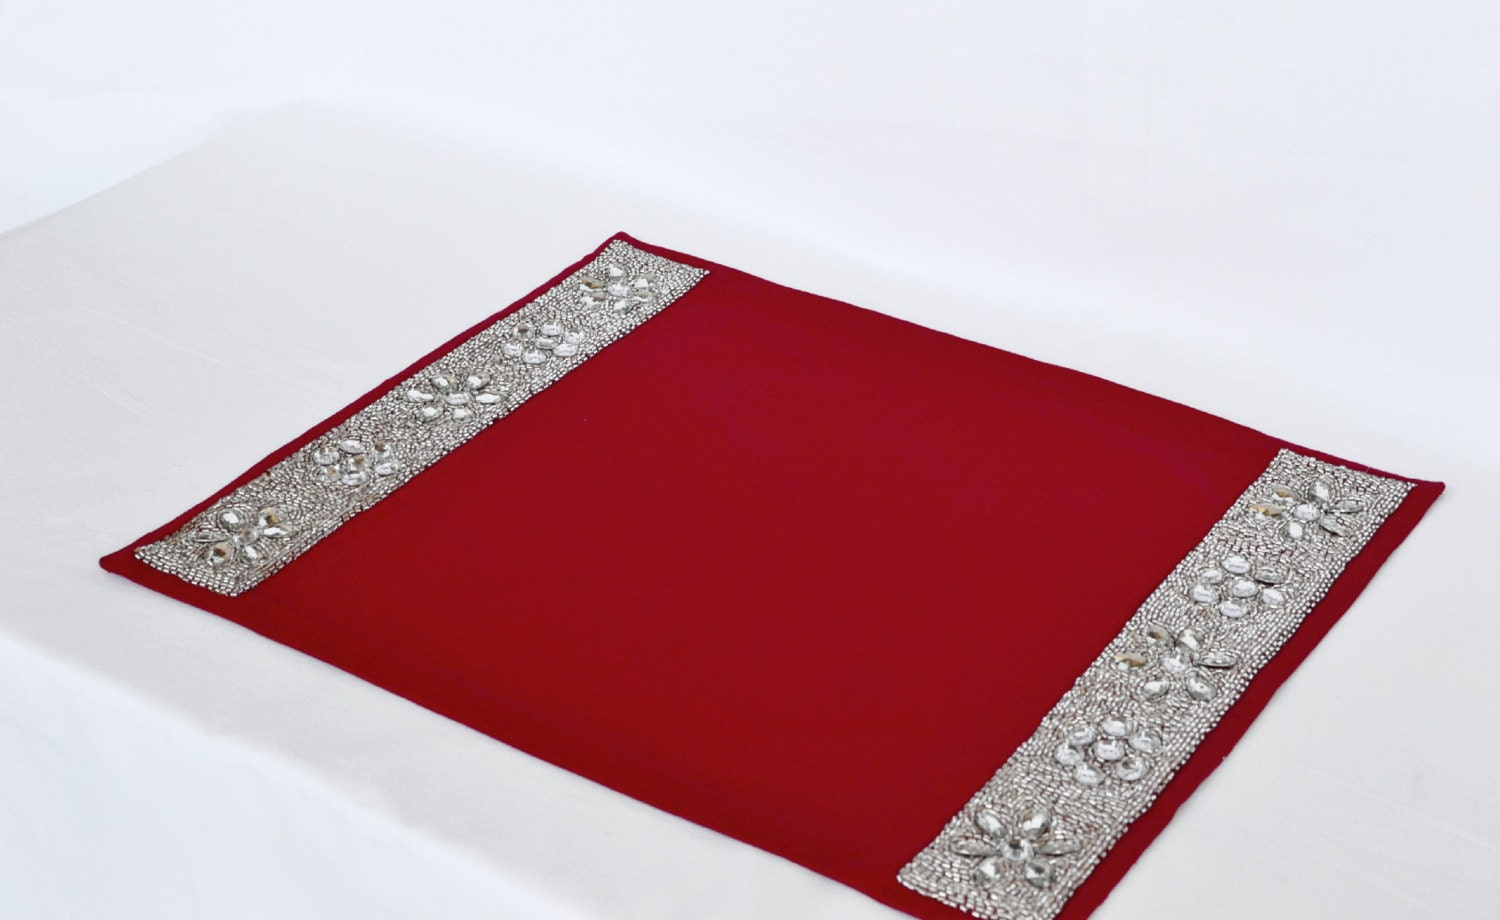 Dining Room Placemats Sequin Placemats Set Of 4 Red Placemats Diamond Glaze